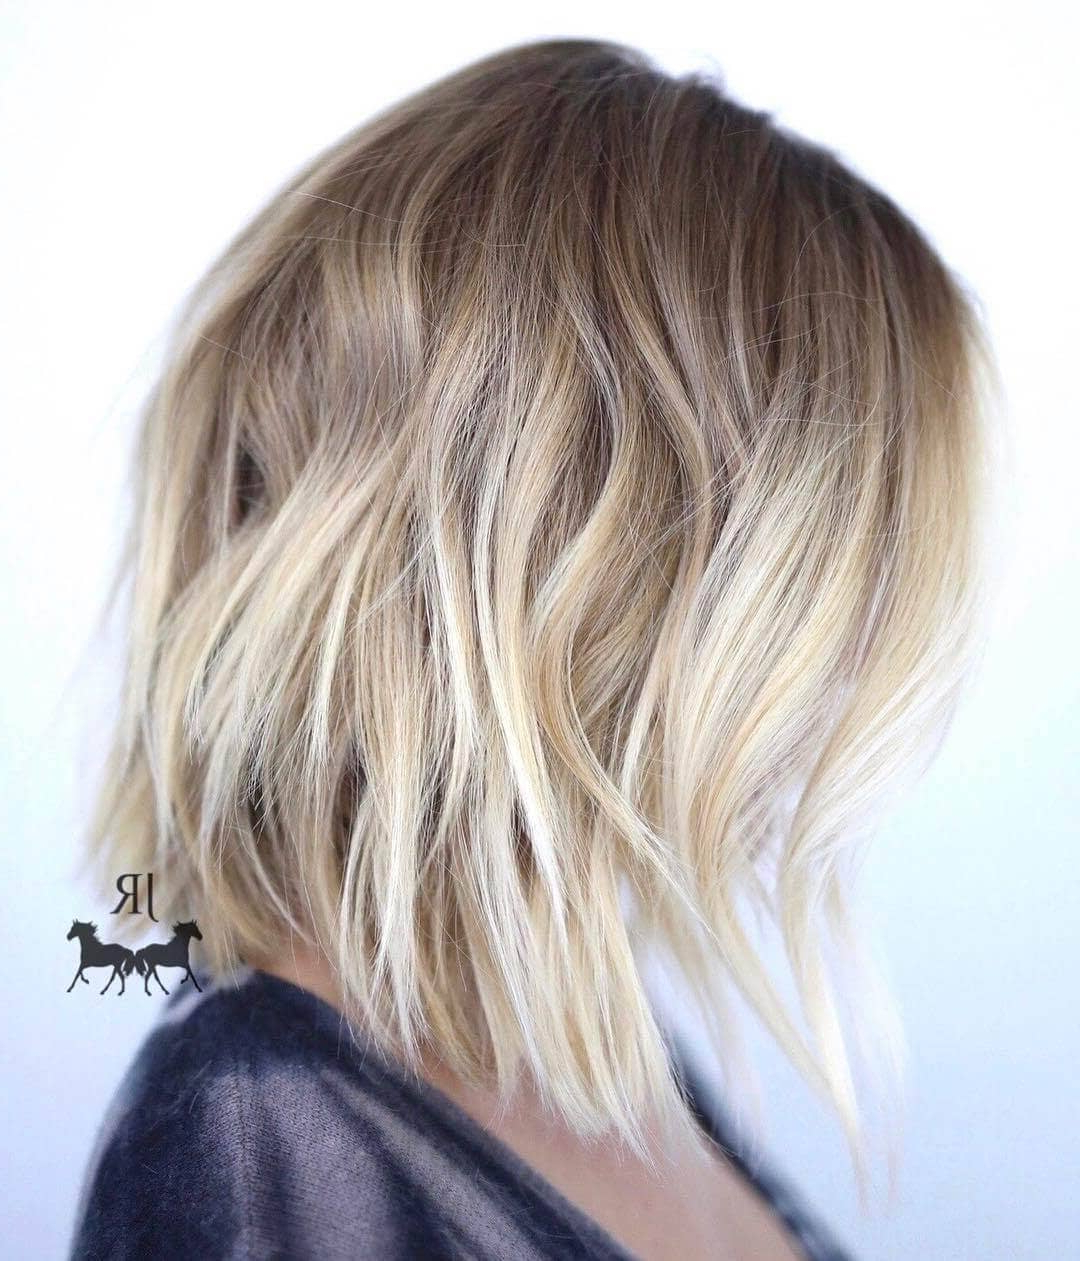 50 Fresh Short Blonde Hair Ideas To Update Your Style In 2018 Pertaining To Short Ash Blonde Bob Hairstyles With Feathered Bangs (View 18 of 20)